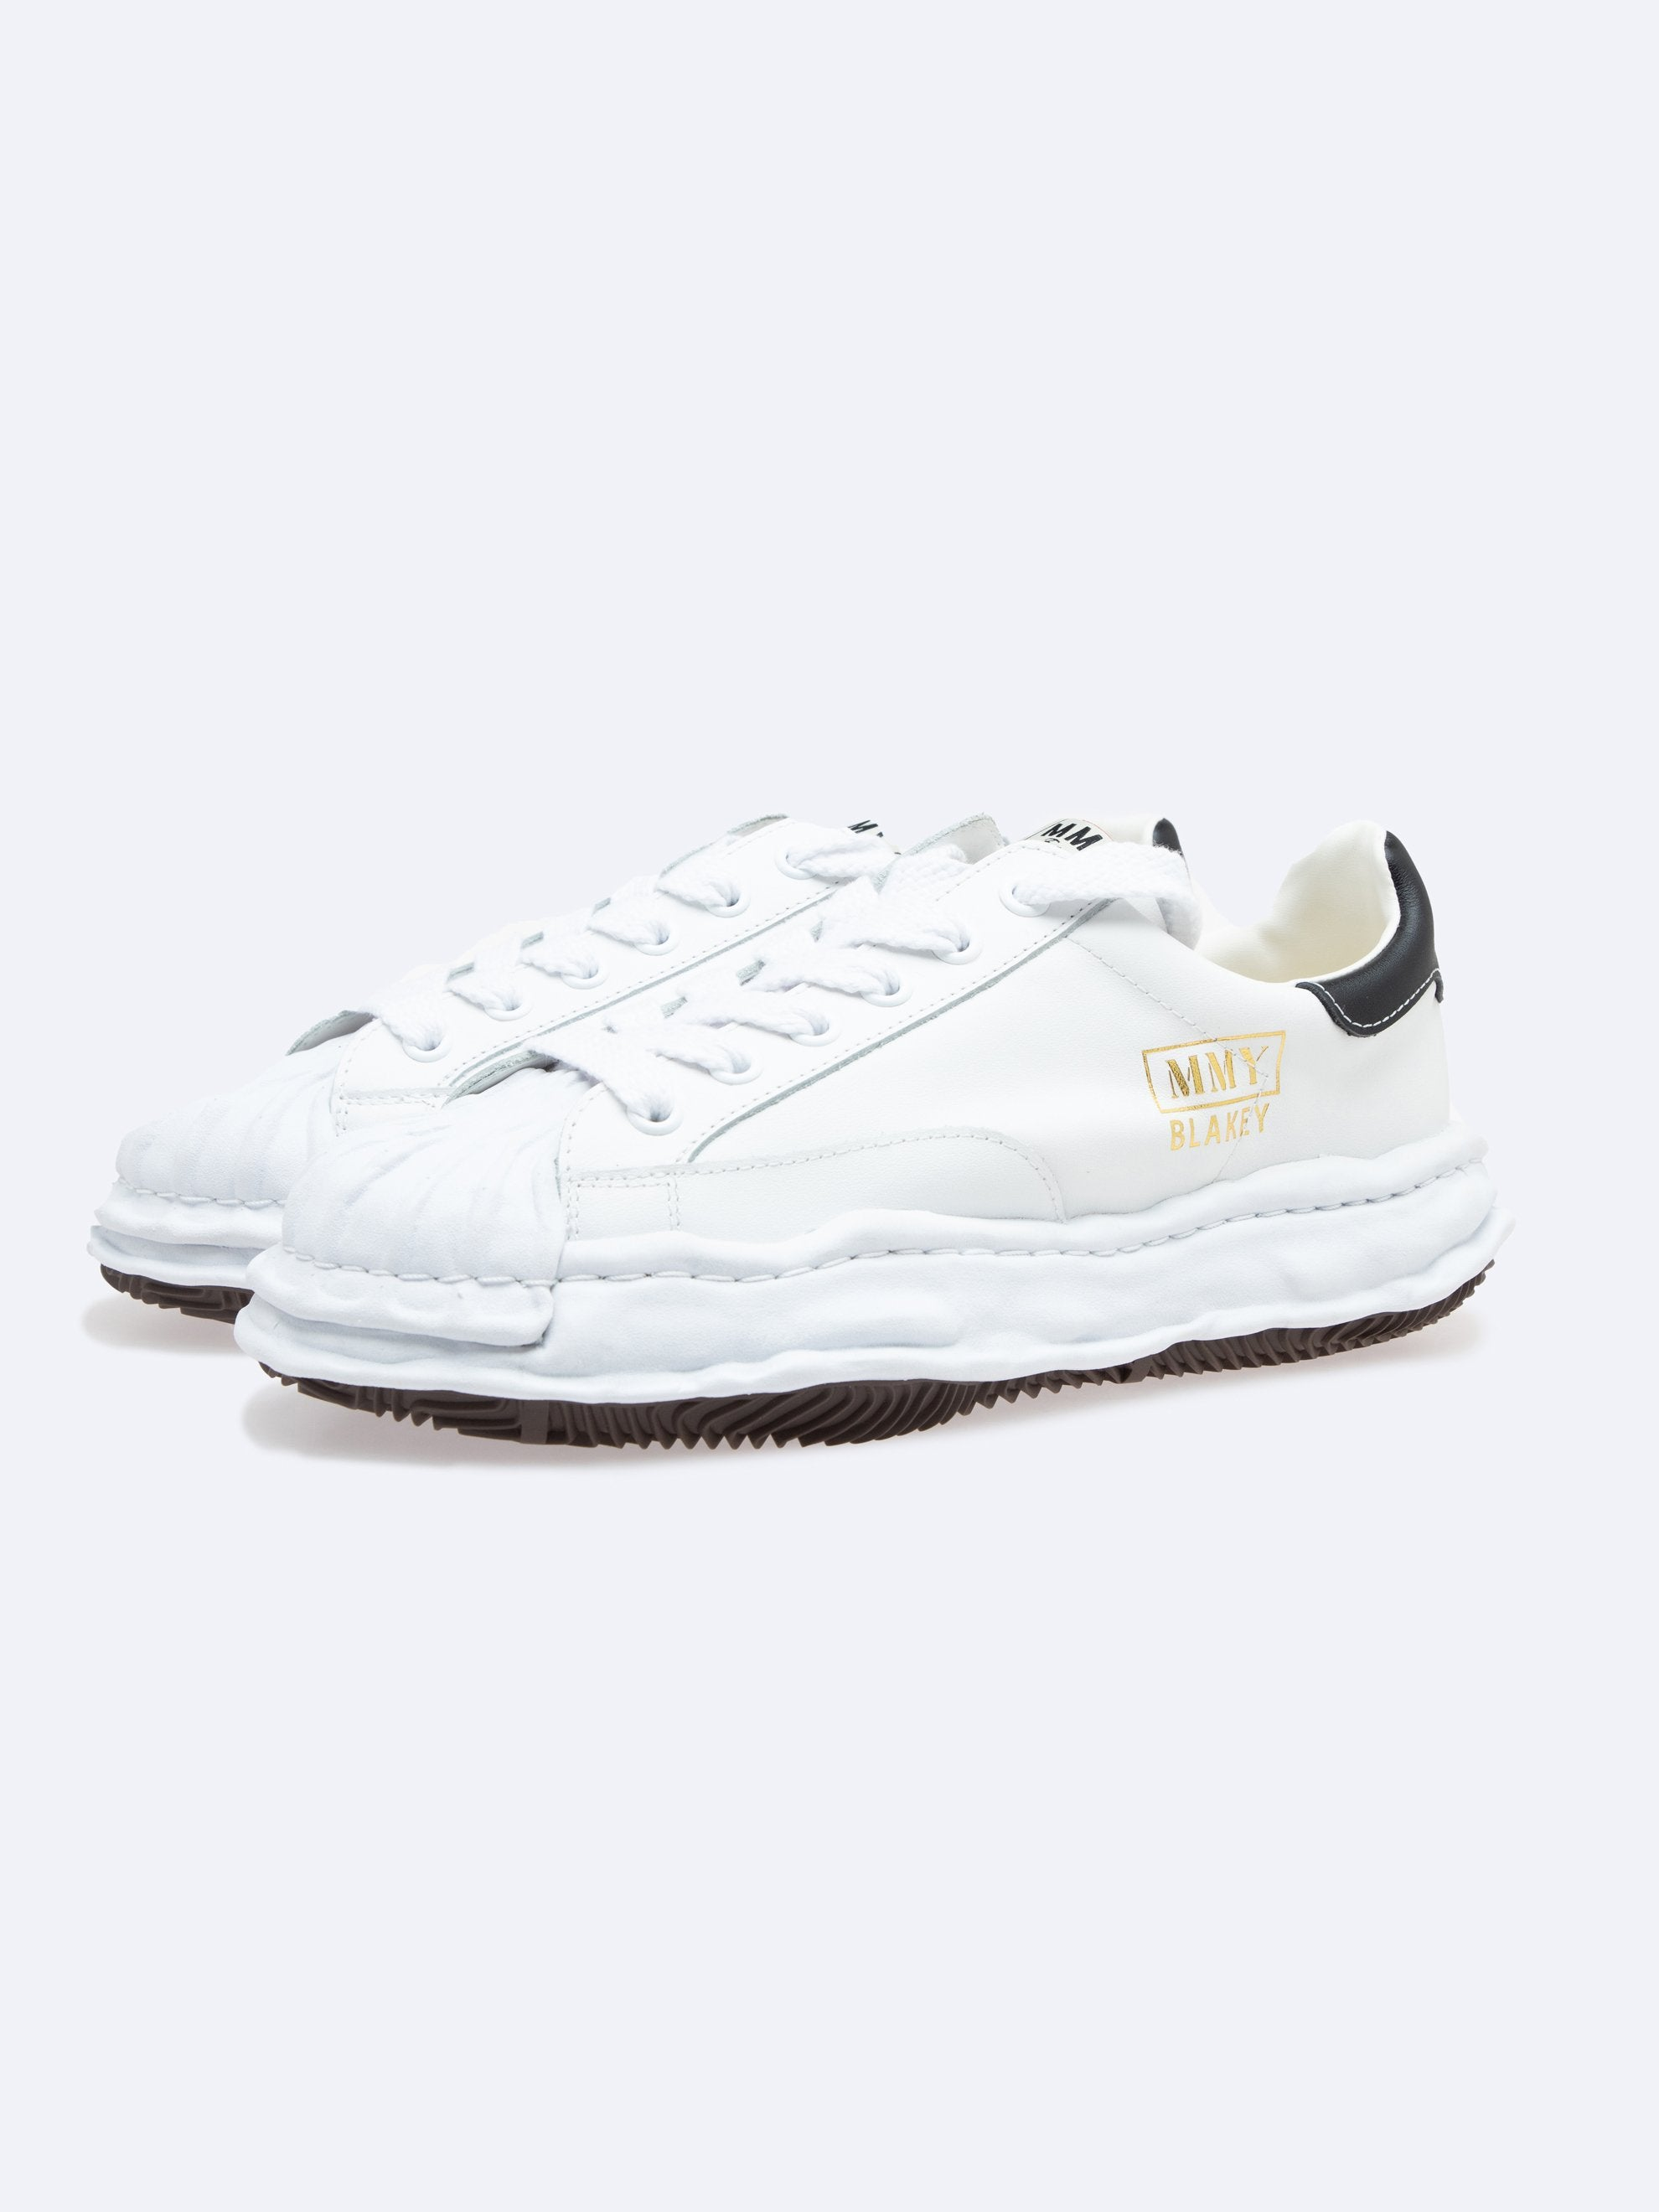 White Blakey Low Original Sole Leather Sneaker 3